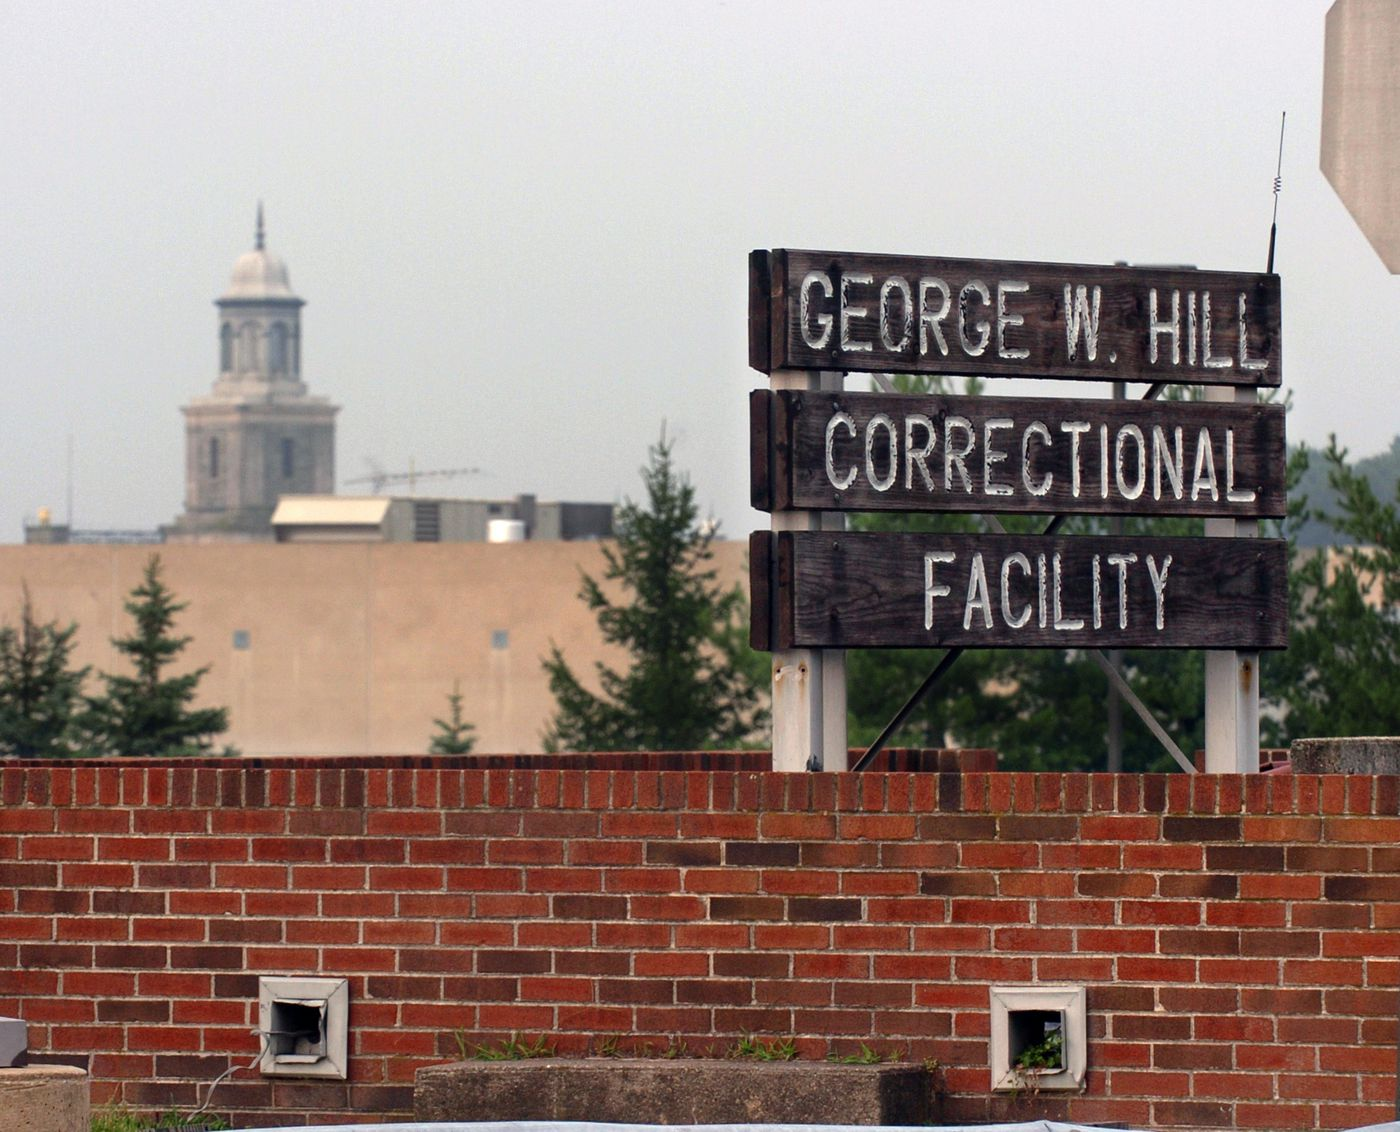 George W. Hill Correctional Facility.